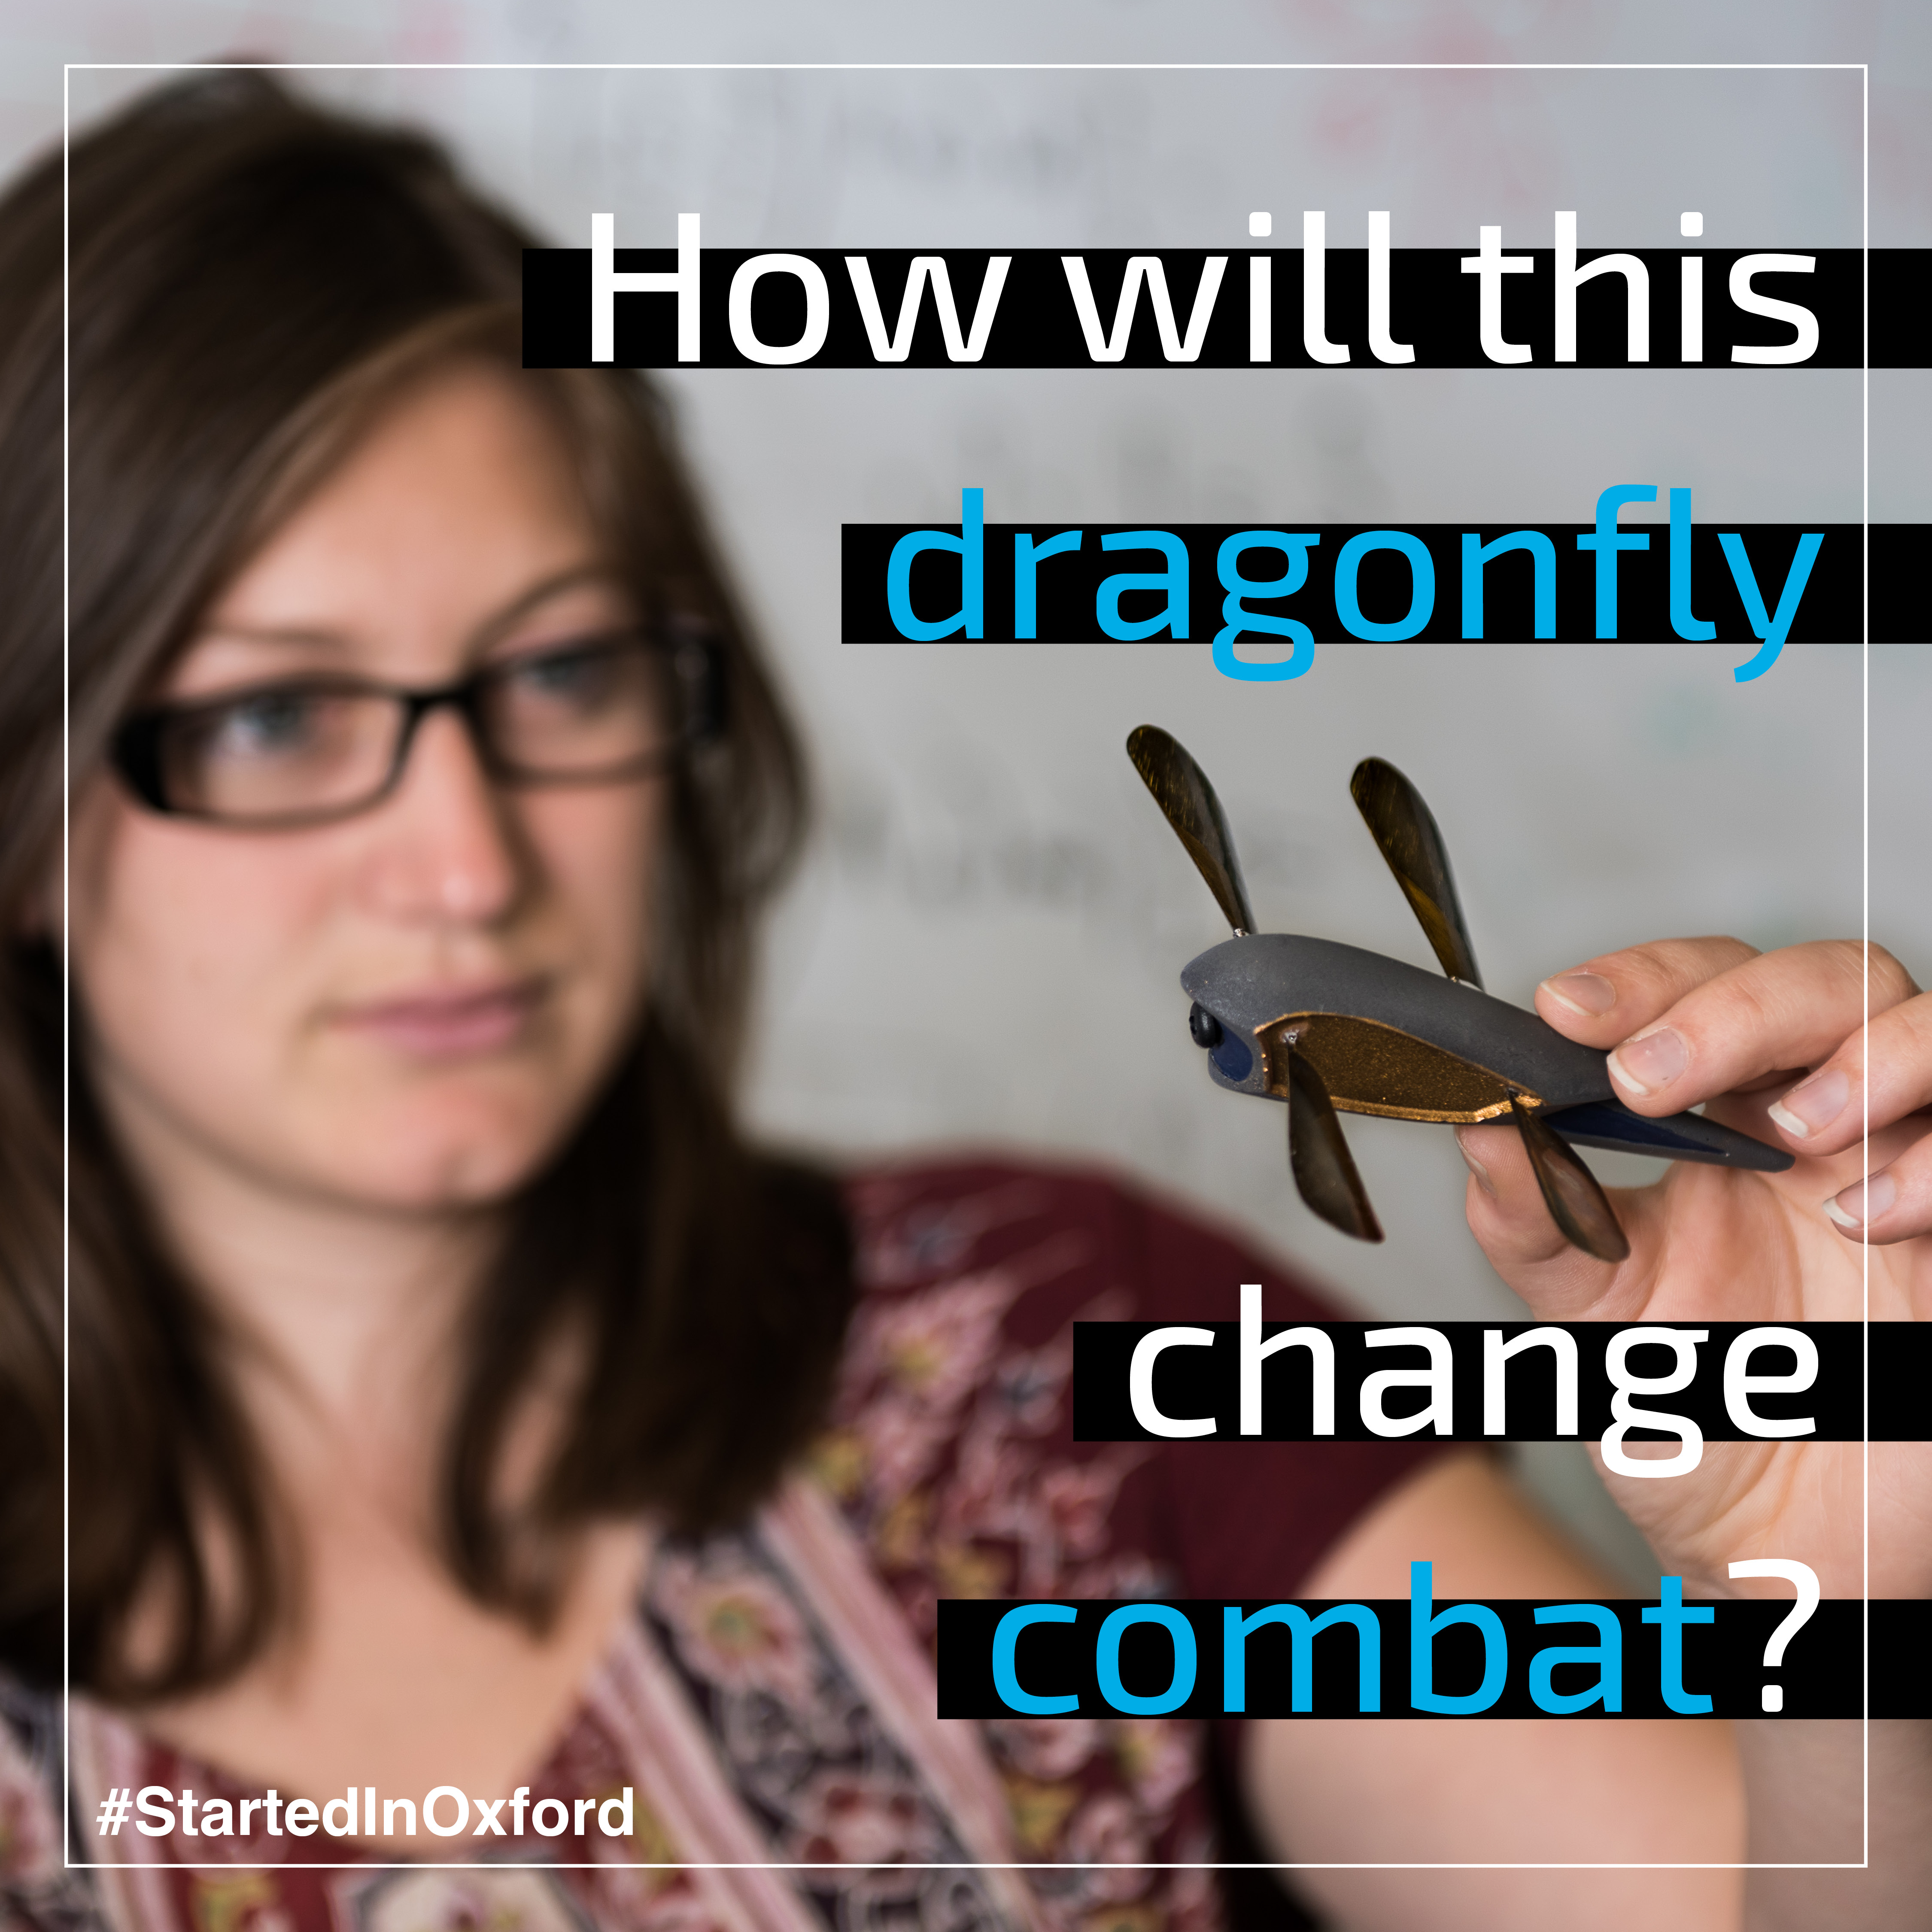 How will this dragonfly change combat